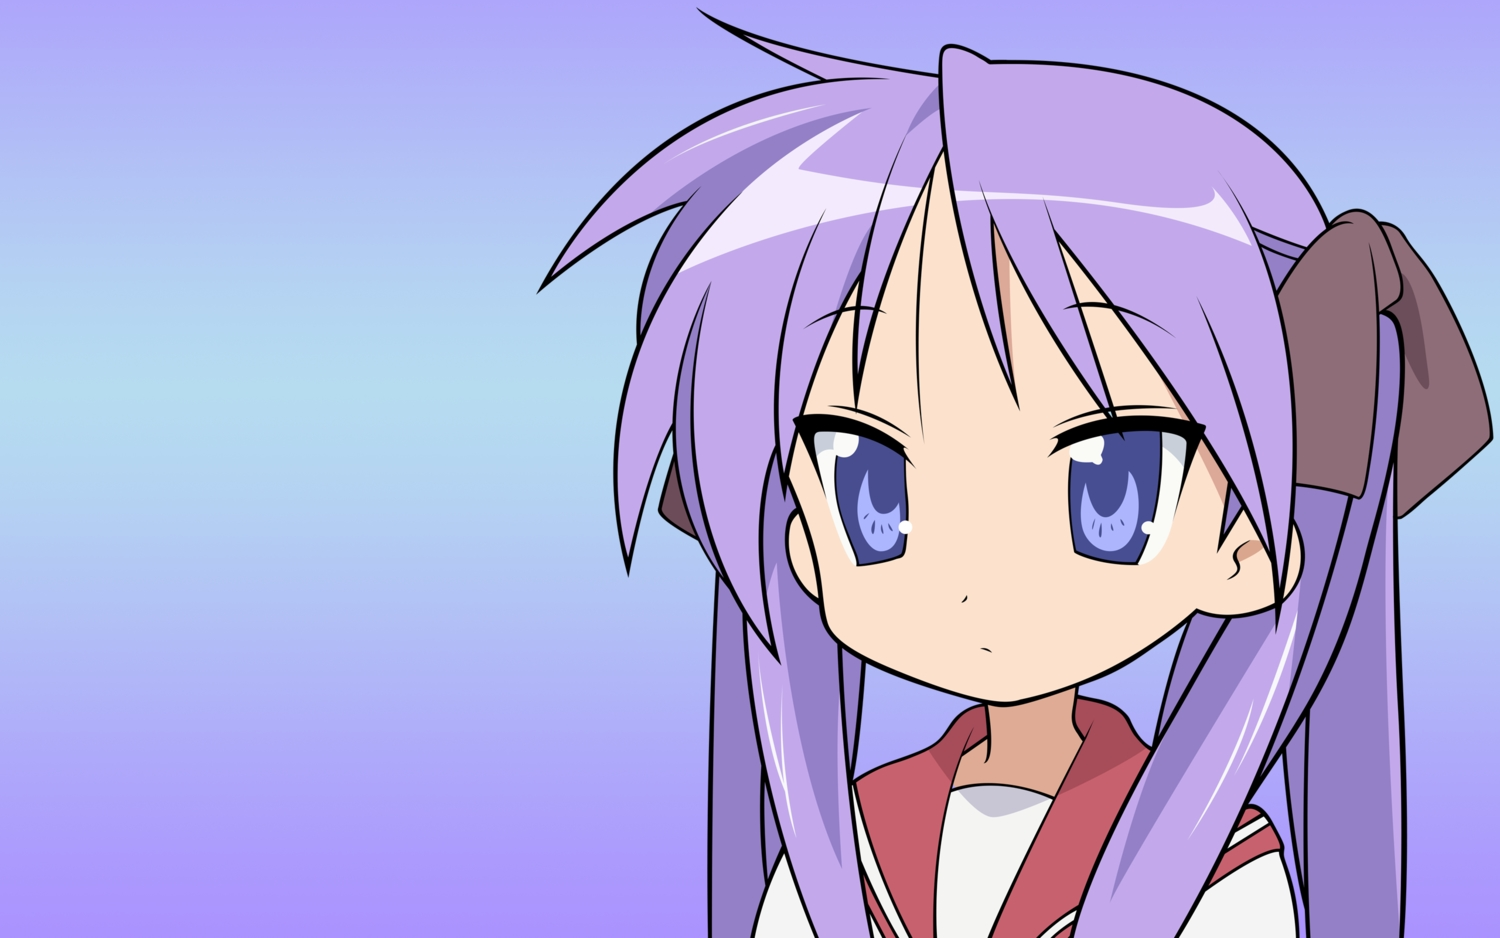 gradient hiiragi_kagami lucky_star purple_hair school_uniform vector